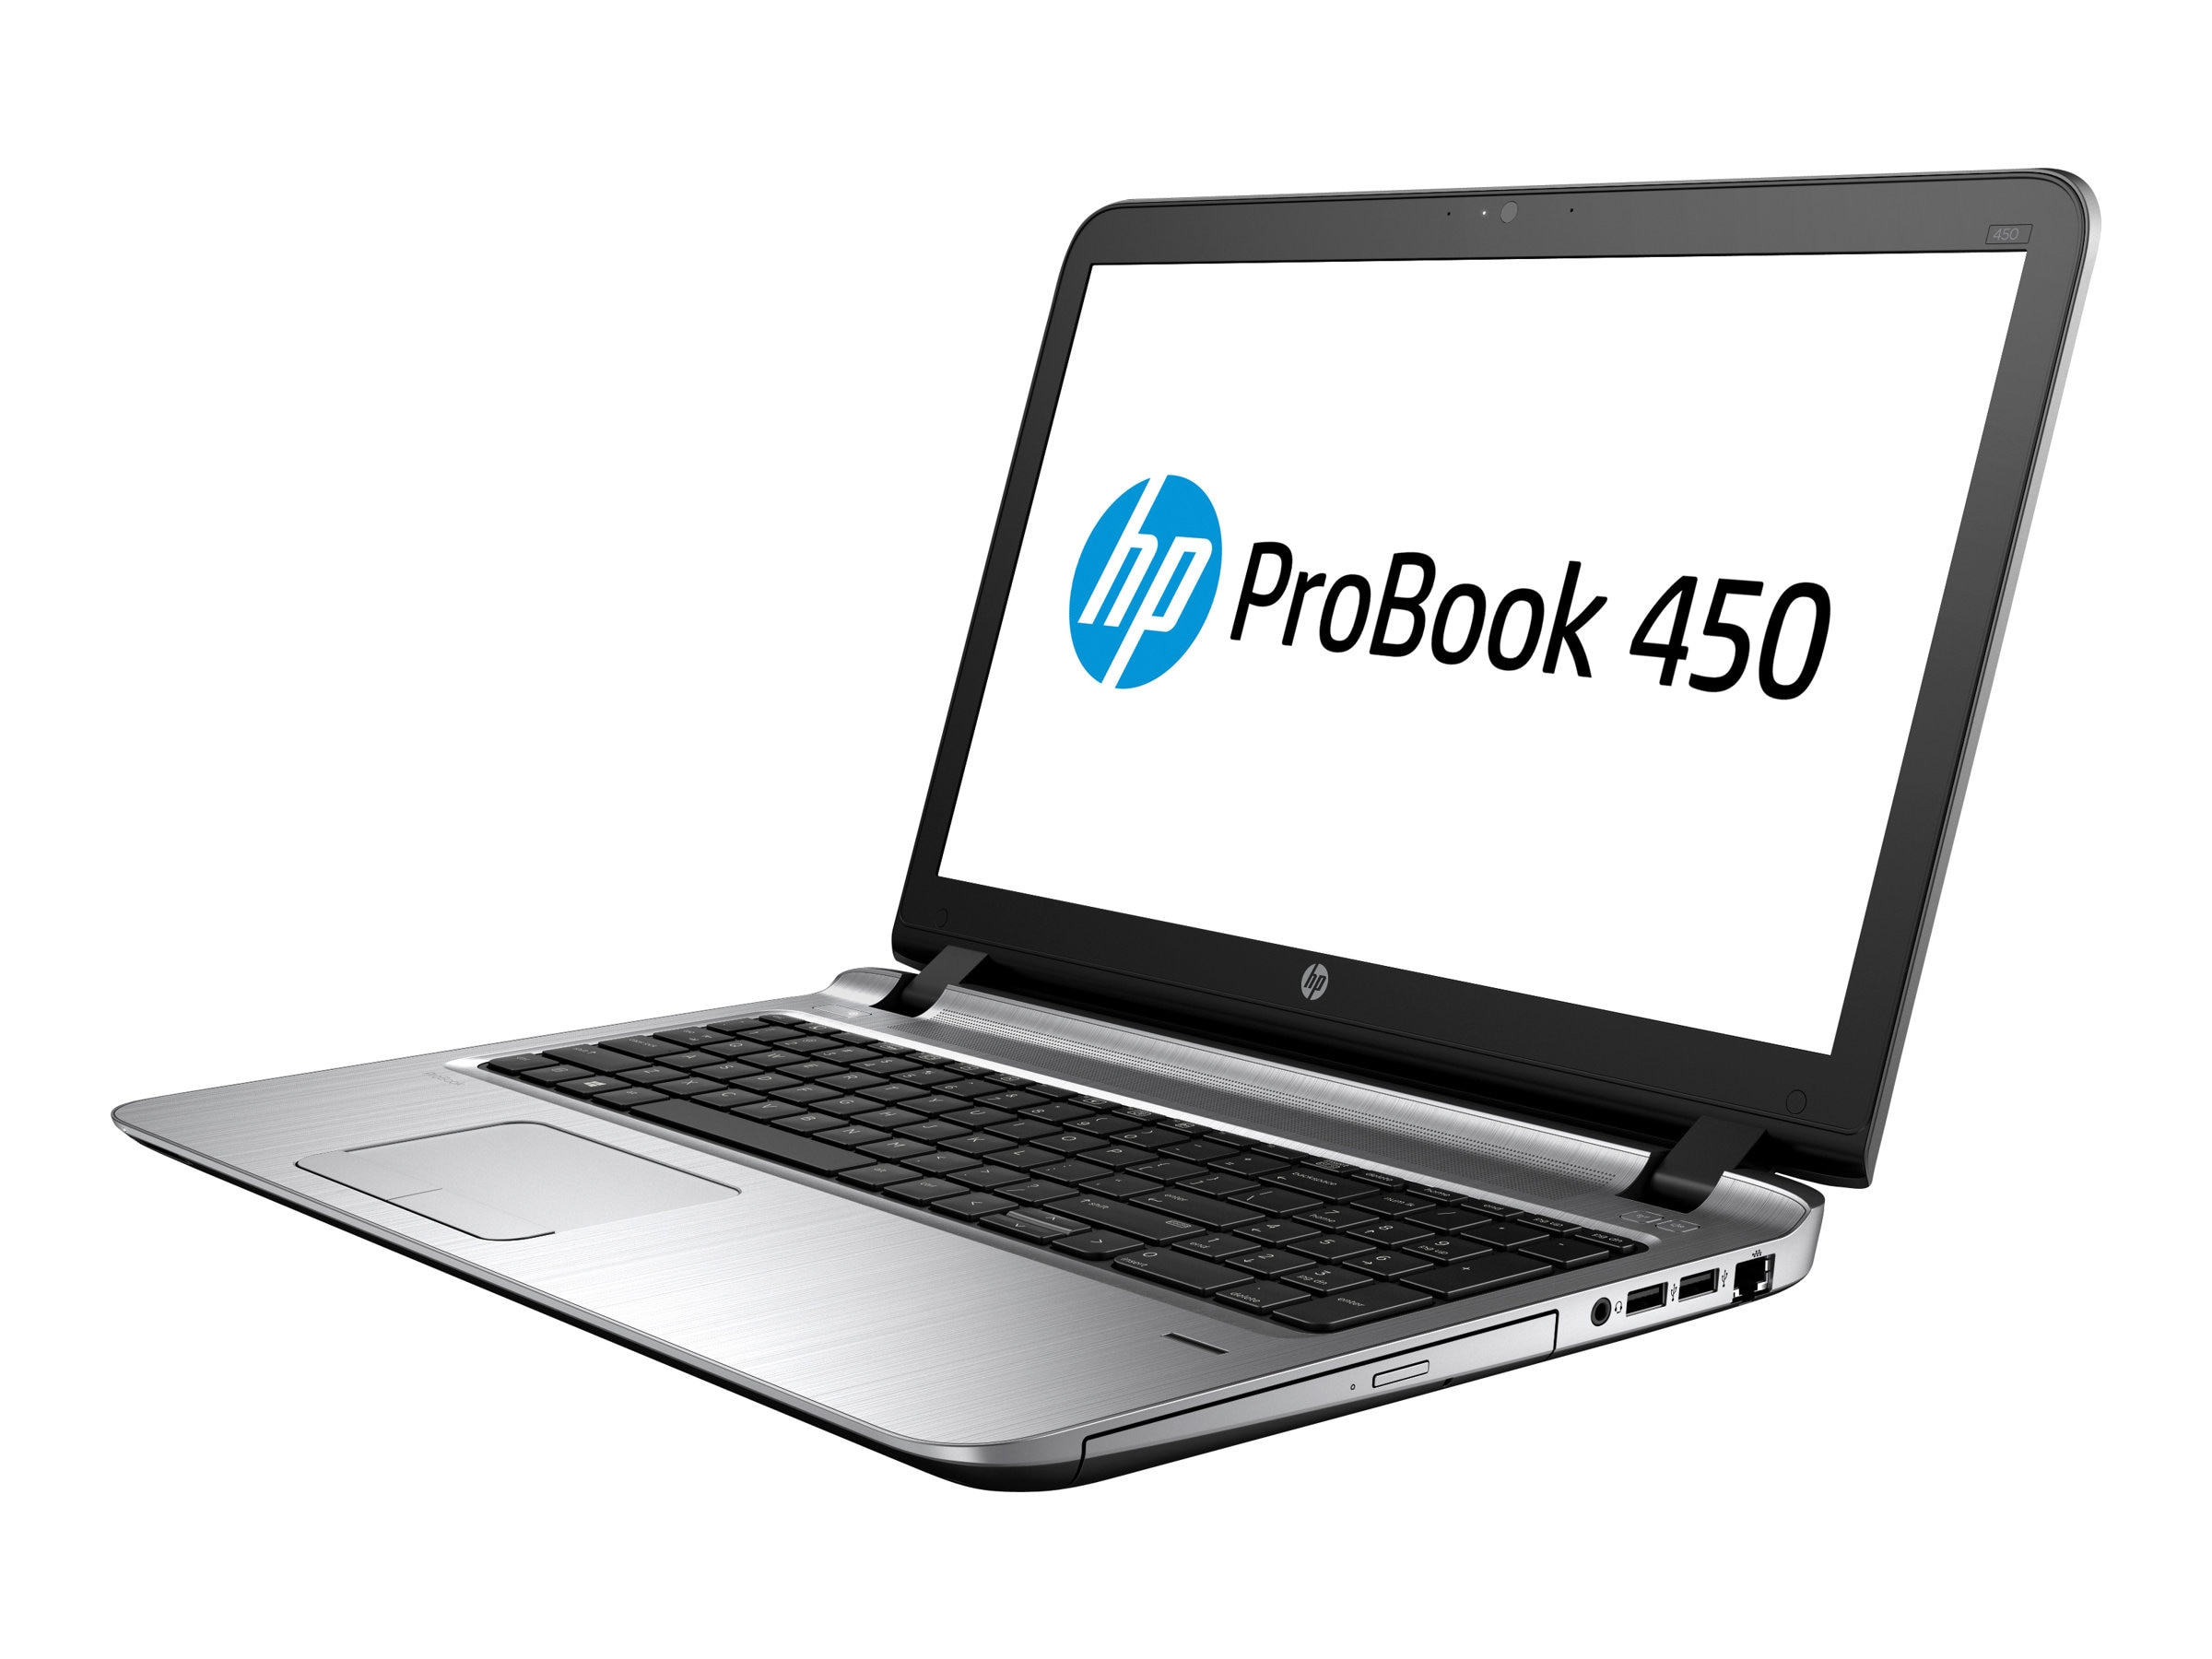 HP ProBook 450 G3 2.3GHz Core i5 15.6in display, T1B70UT#ABA, 30731461, Notebooks